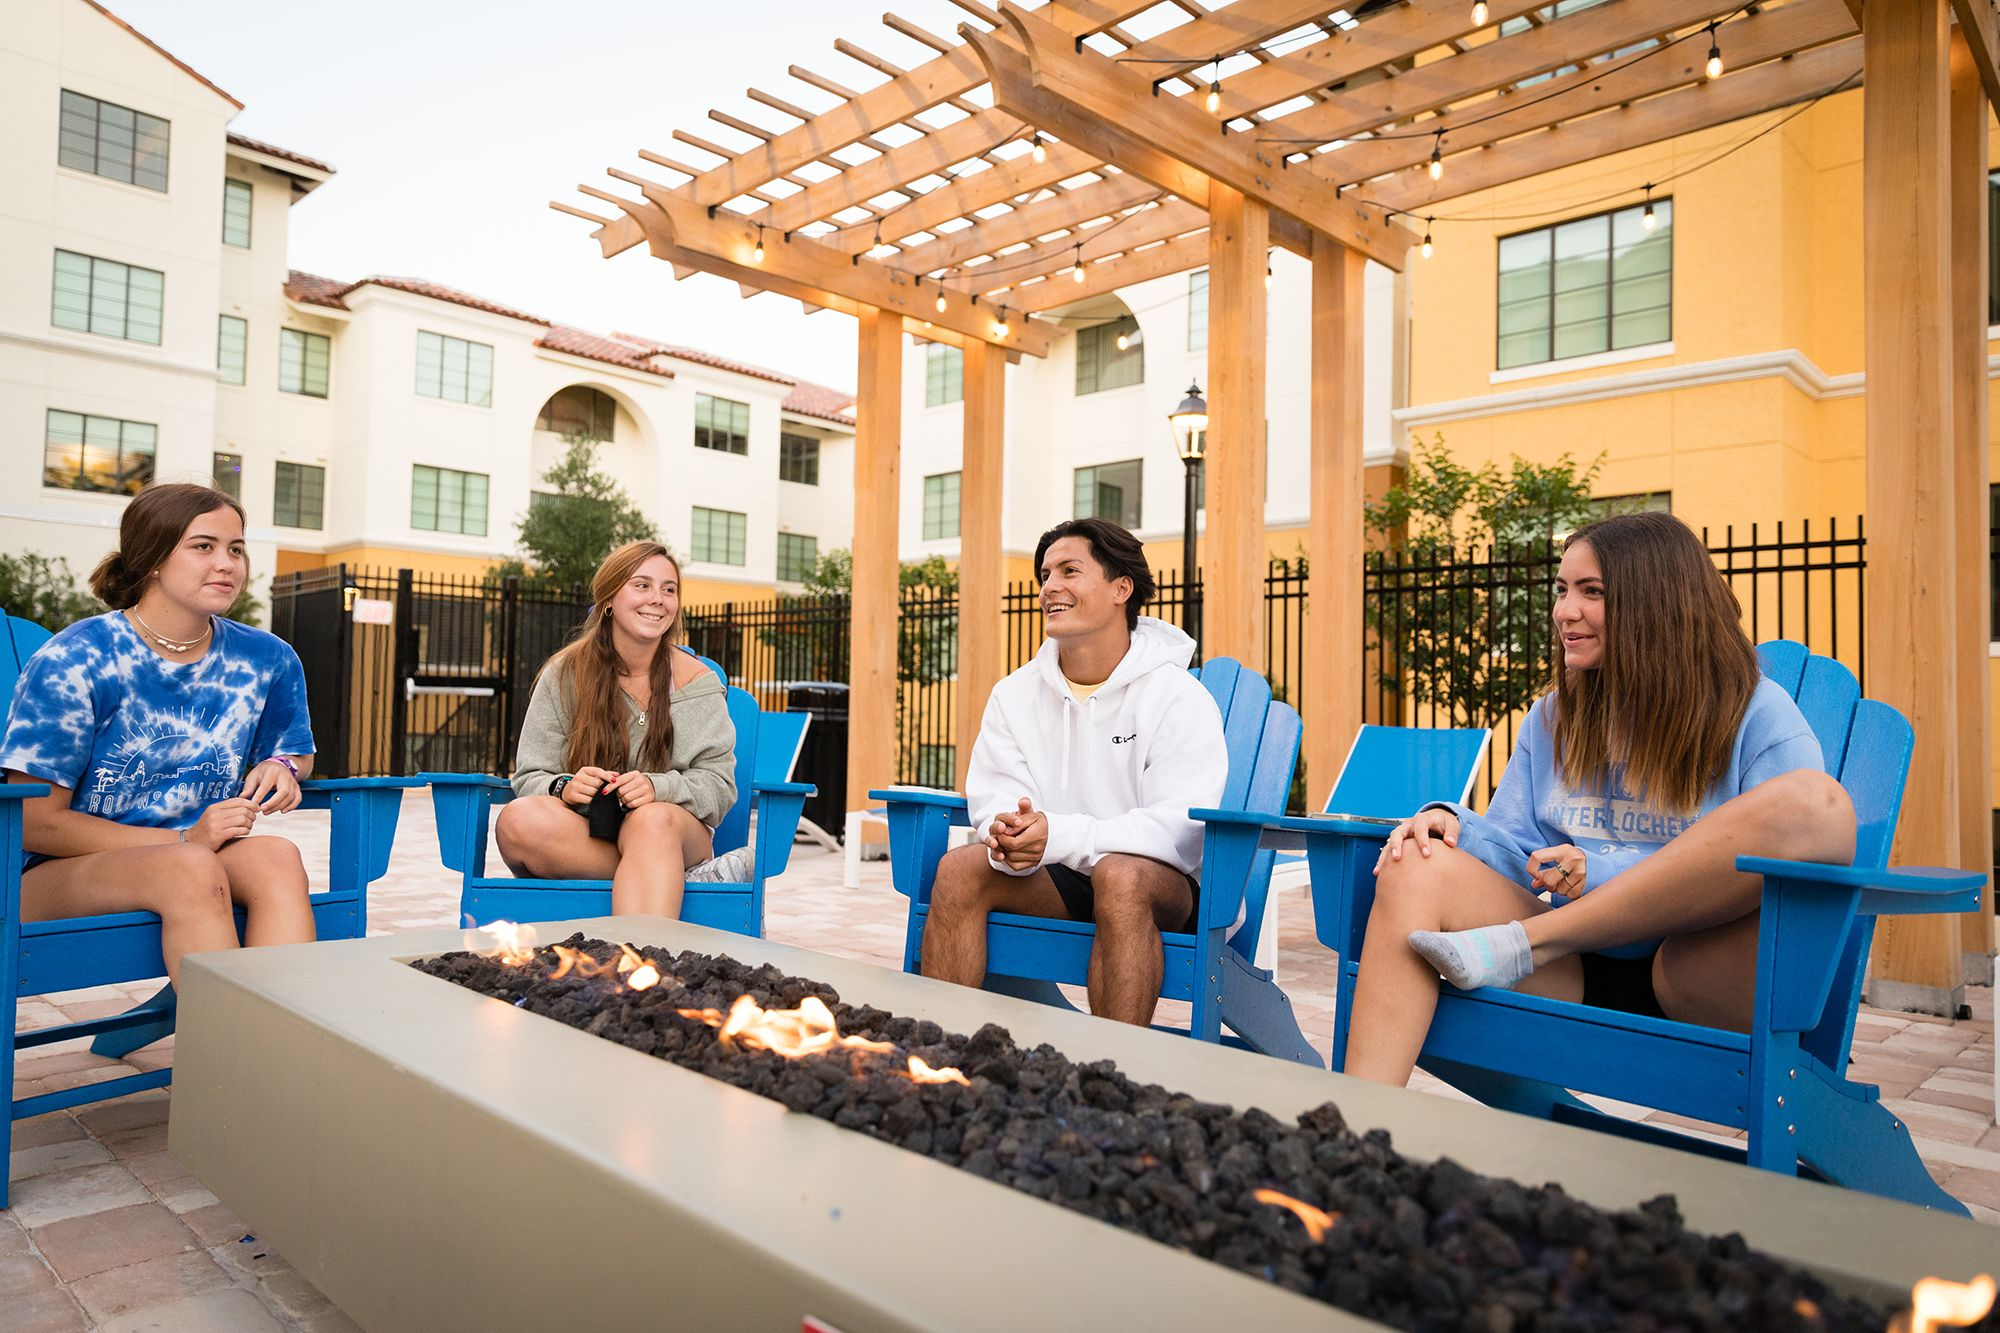 A group of students hang out by an outdoor firepit.